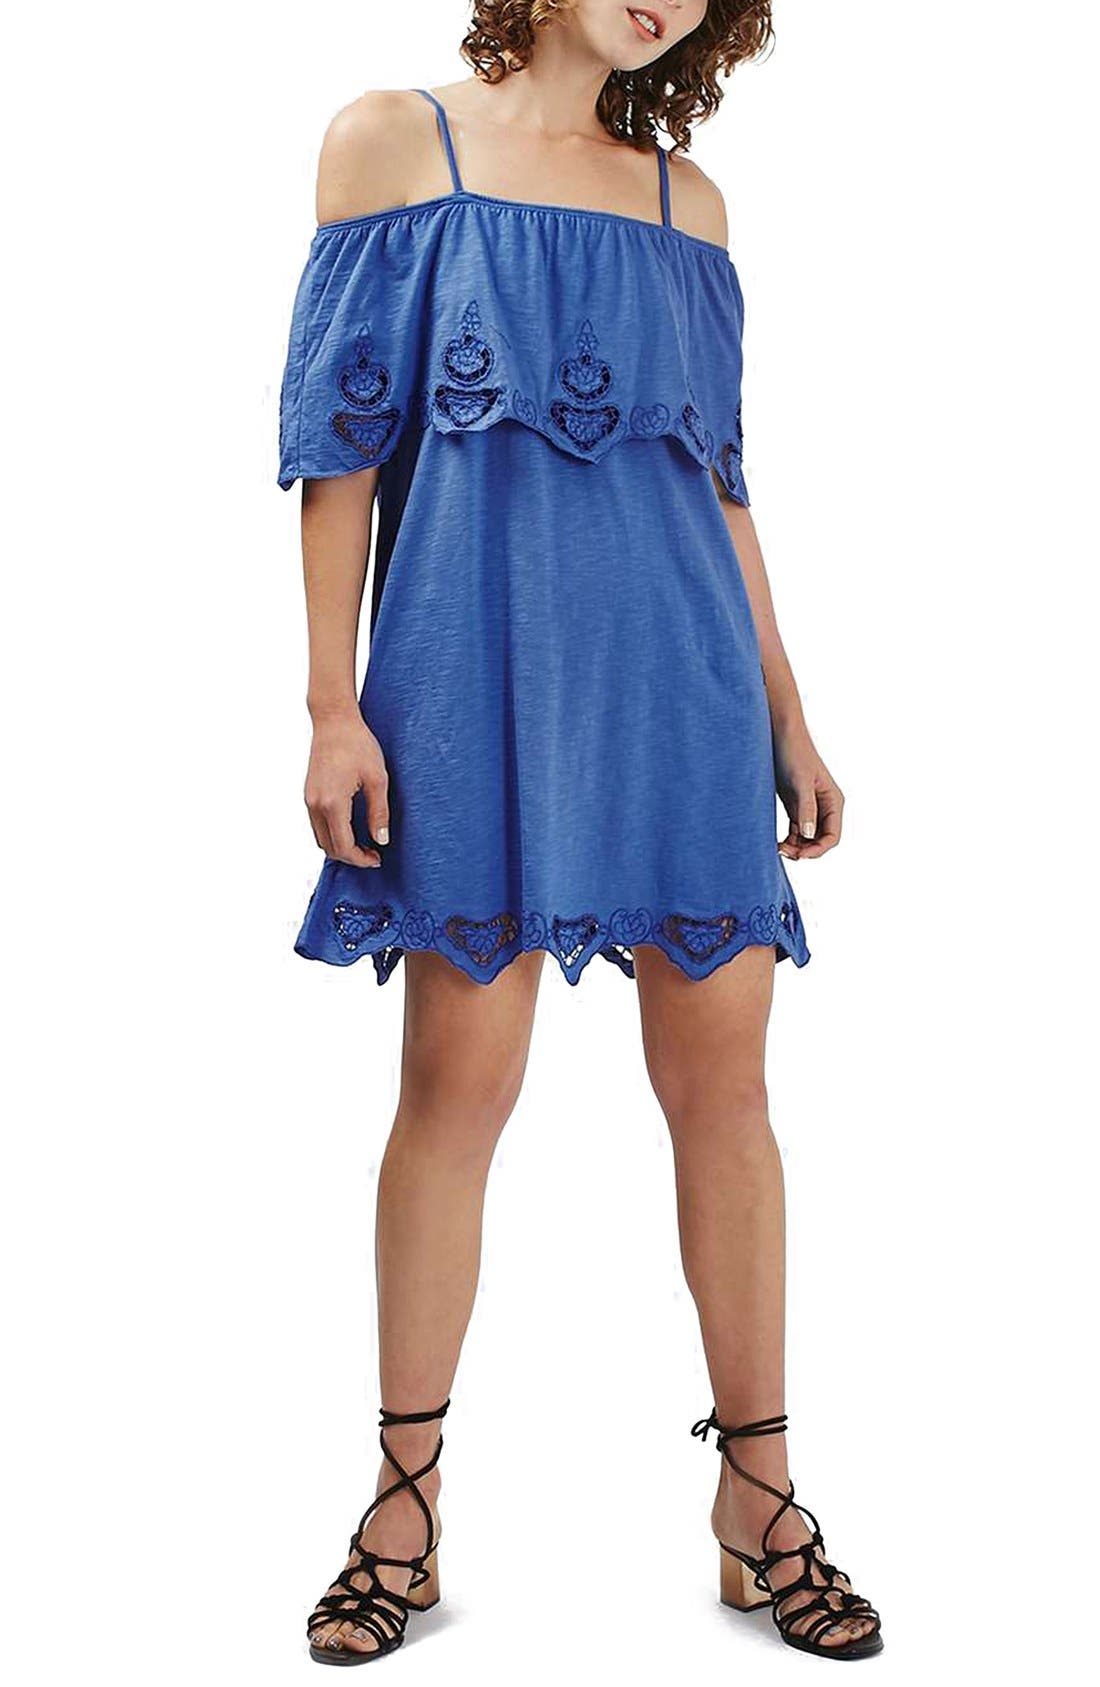 Alternate Image 1 Selected - Topshop Cutwork Trim Strappy Sundress (Regular & Petite)